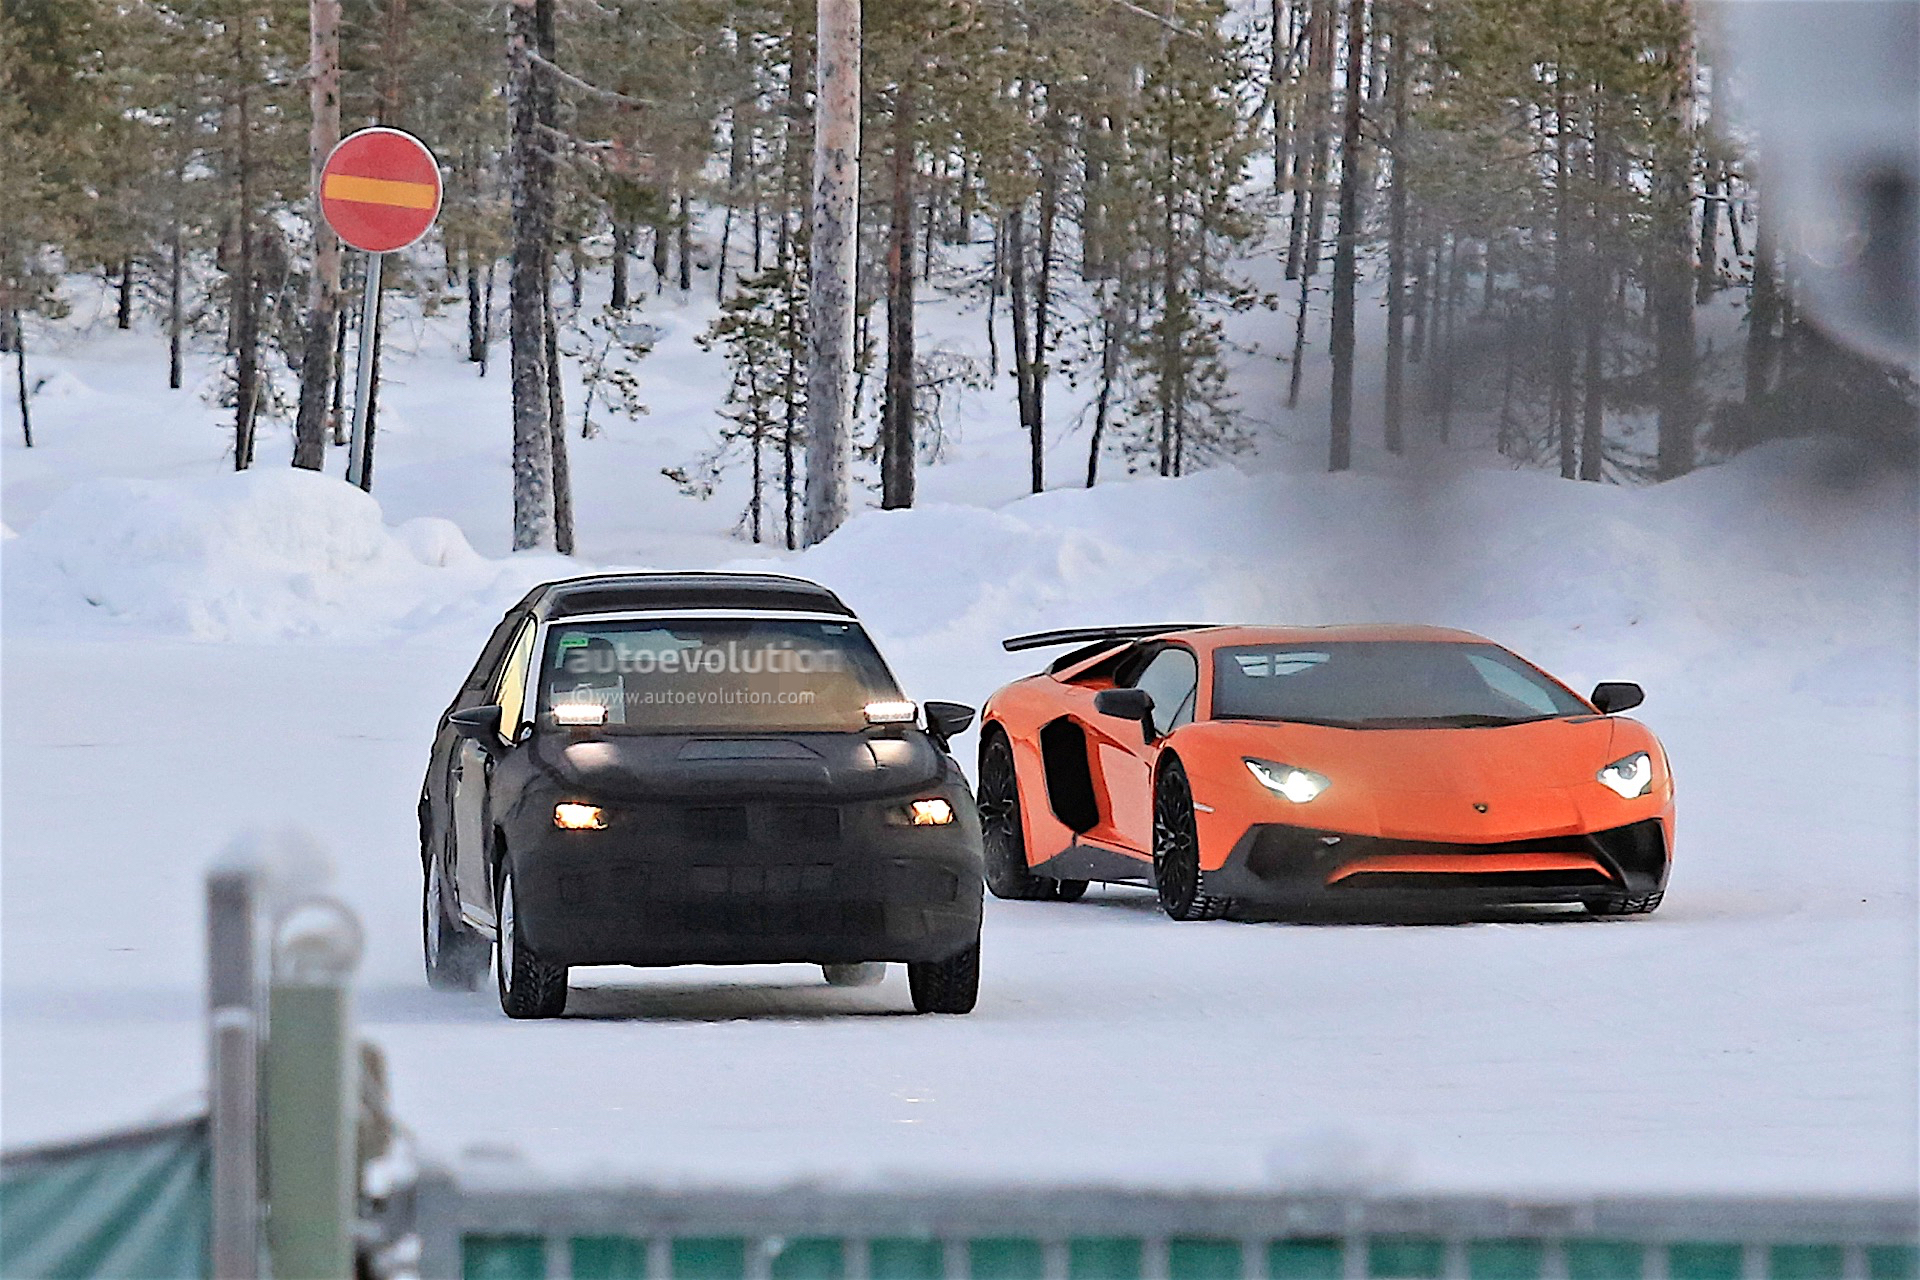 2018 seat arona spotted testing in winter conditions autoevolution. Black Bedroom Furniture Sets. Home Design Ideas